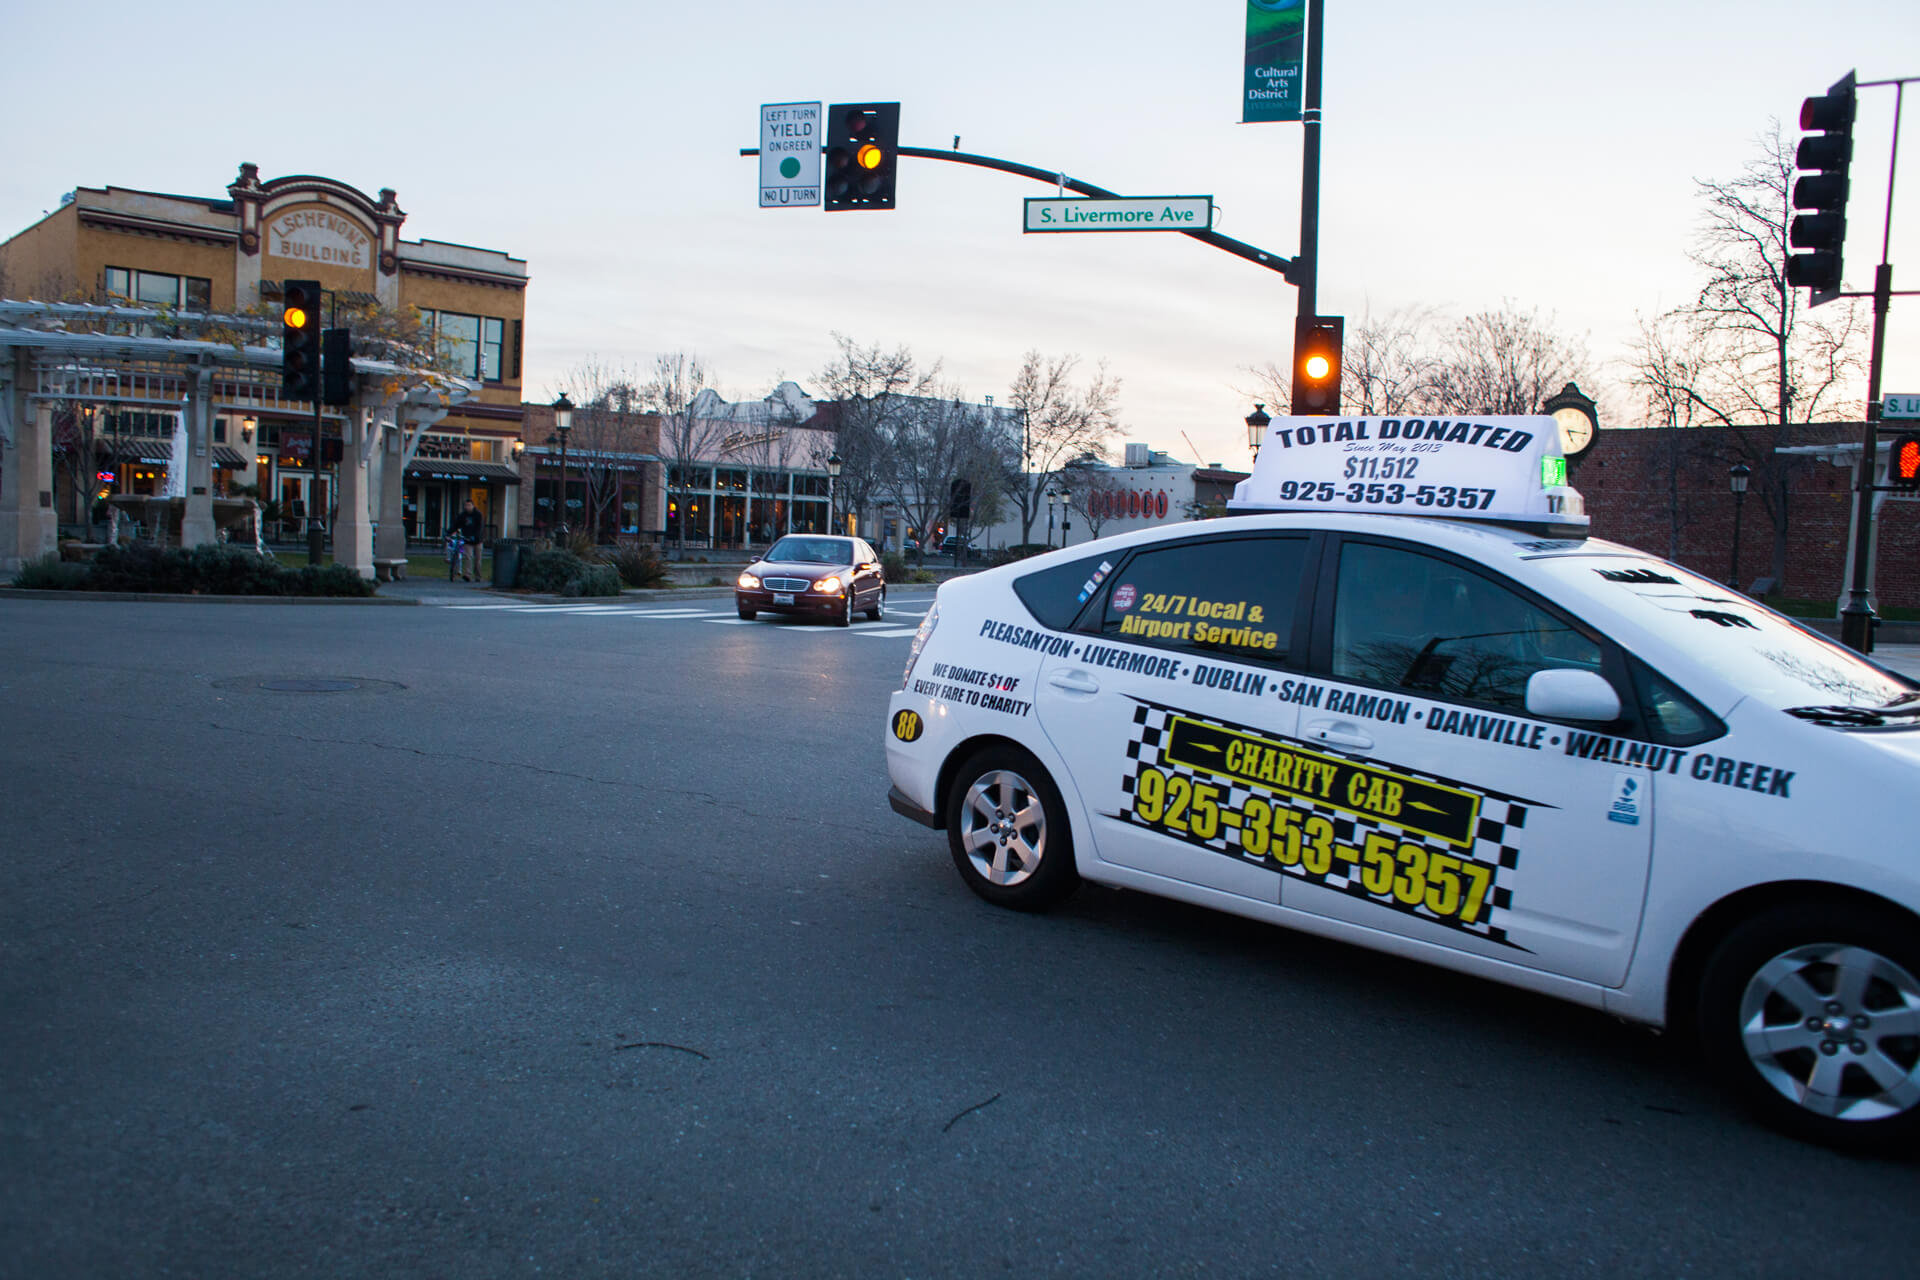 charity-cab-services the tri valley as a top rated taxi company